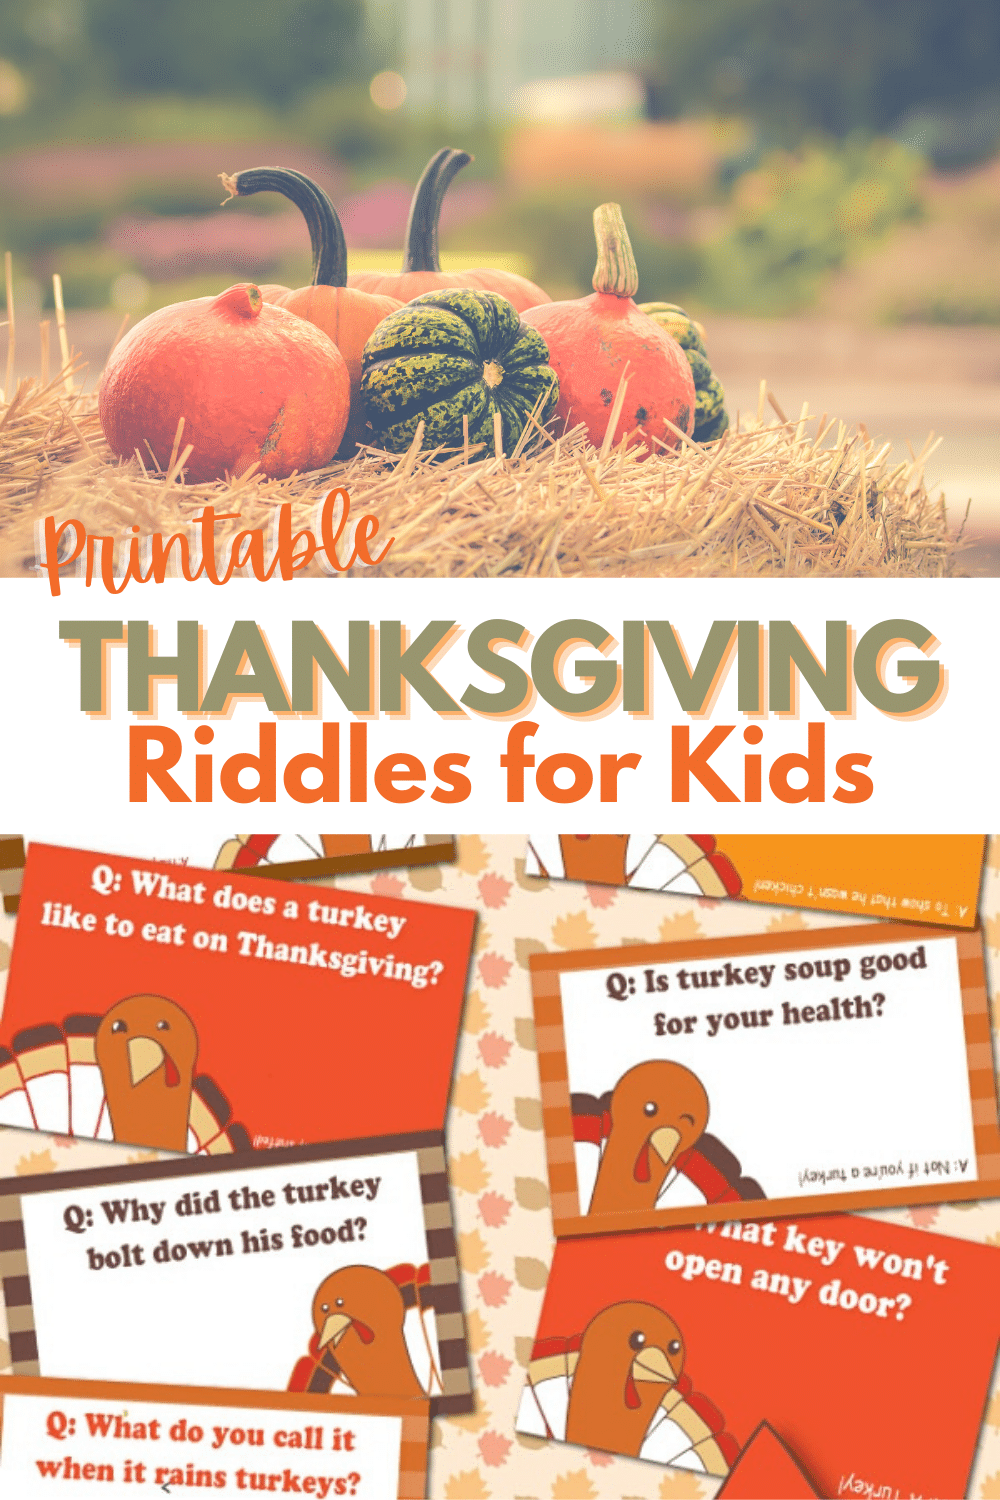 These funny printable Thanksgiving riddles are perfect for kids! Sneak them into their lunchboxes the week leading up to Thanksgiving or use them as place cards at the dinner table. #Thanksgiving #printables #kidjokes via @wondermomwannab